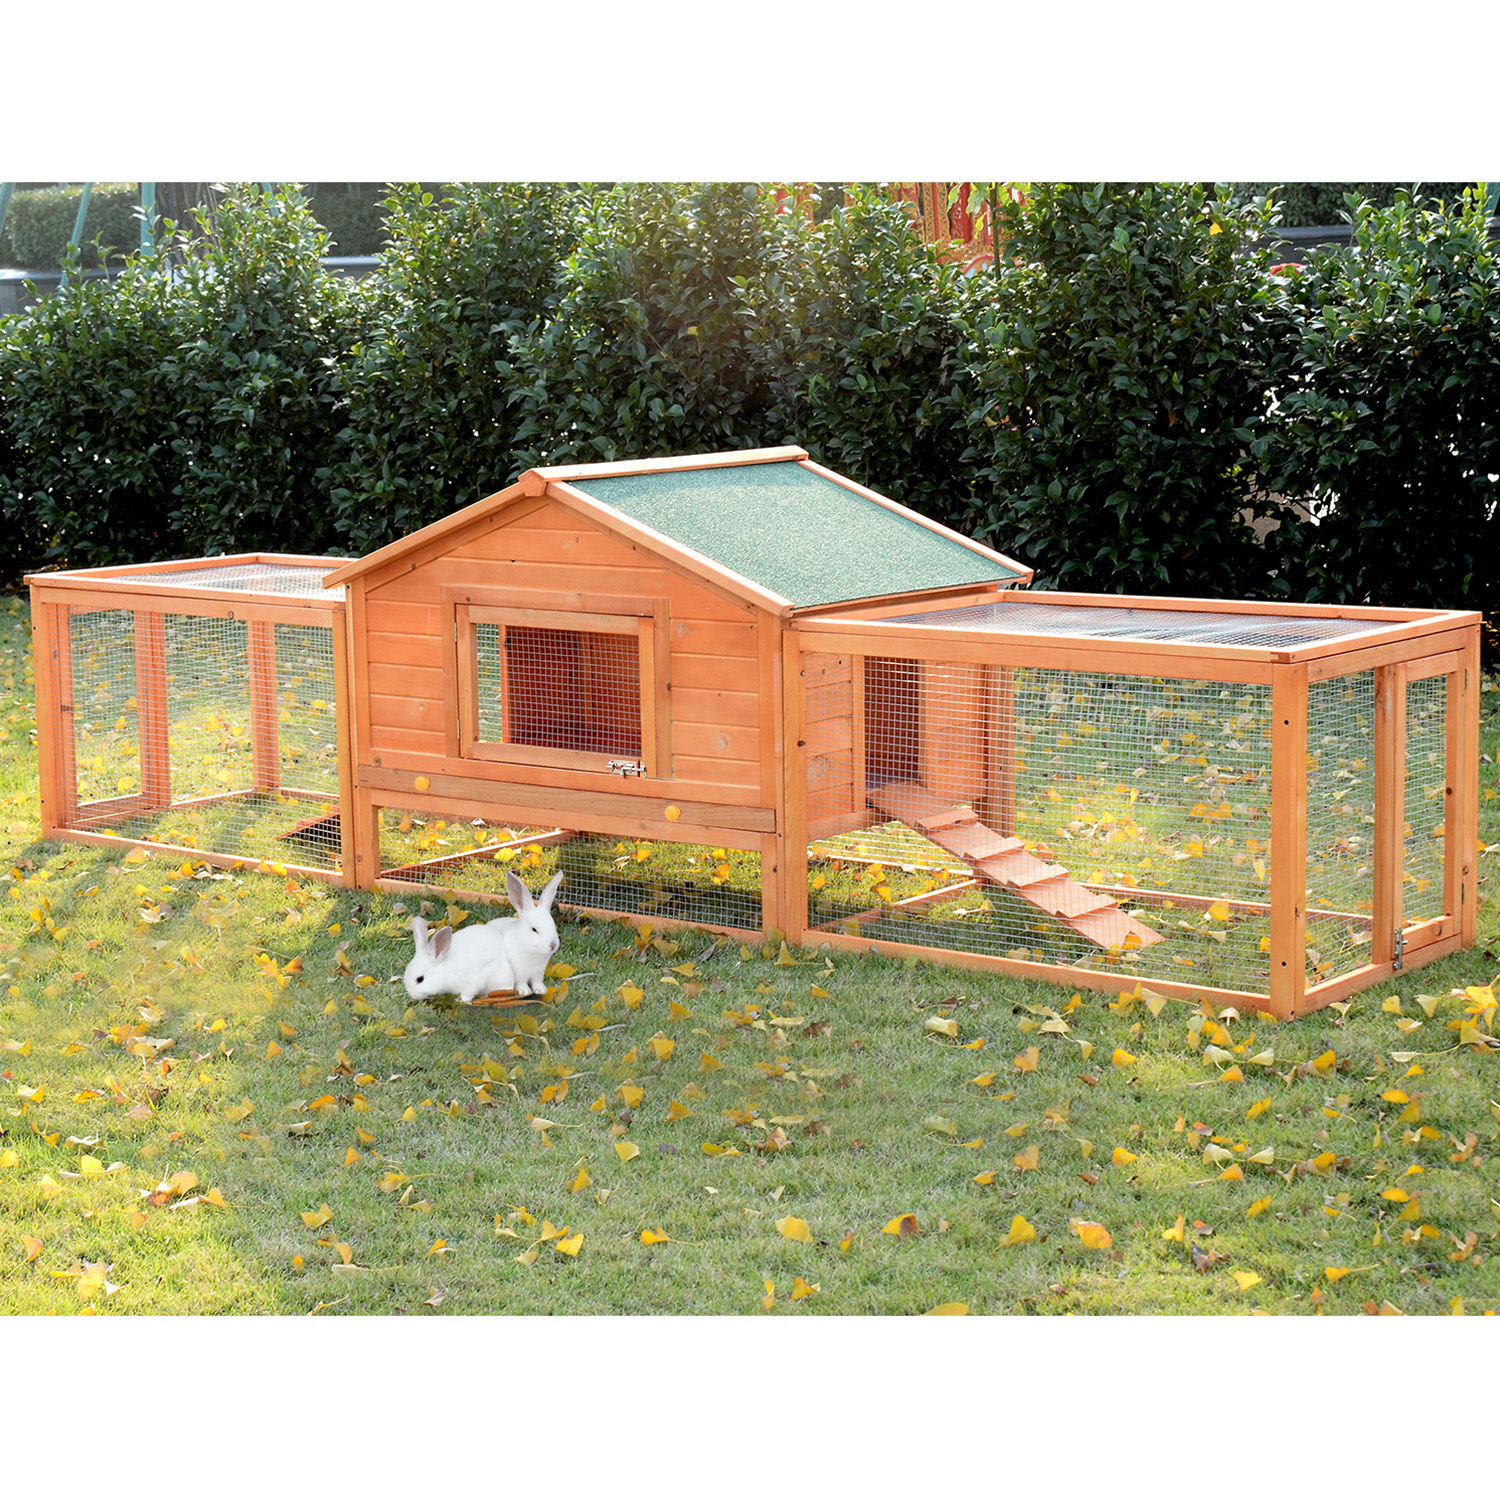 sale hutch for search results howto handmade small hutches a building rabbit instructables